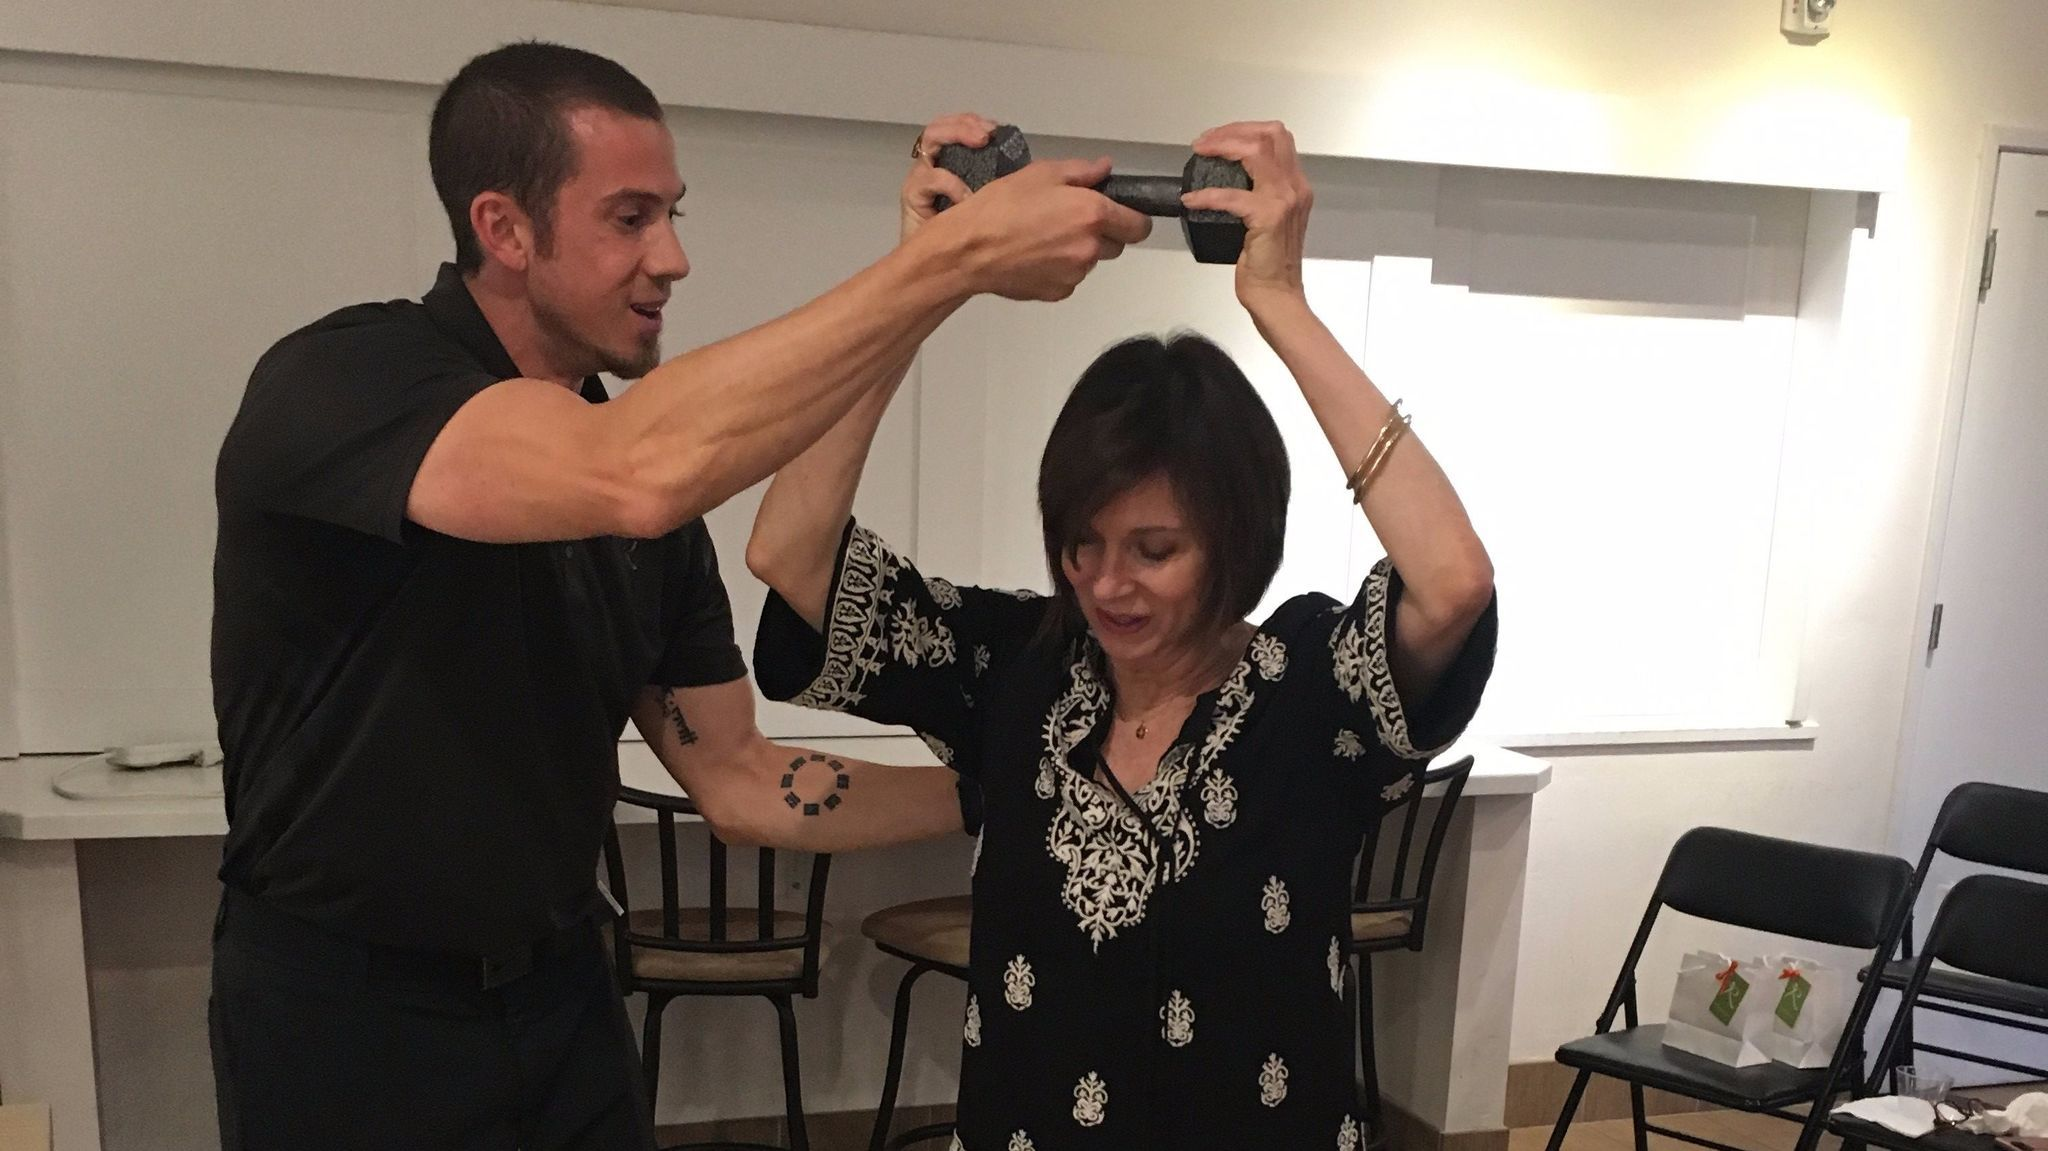 A Reneu Health staffer shows Mari Perez how to raise a weight for improved posture